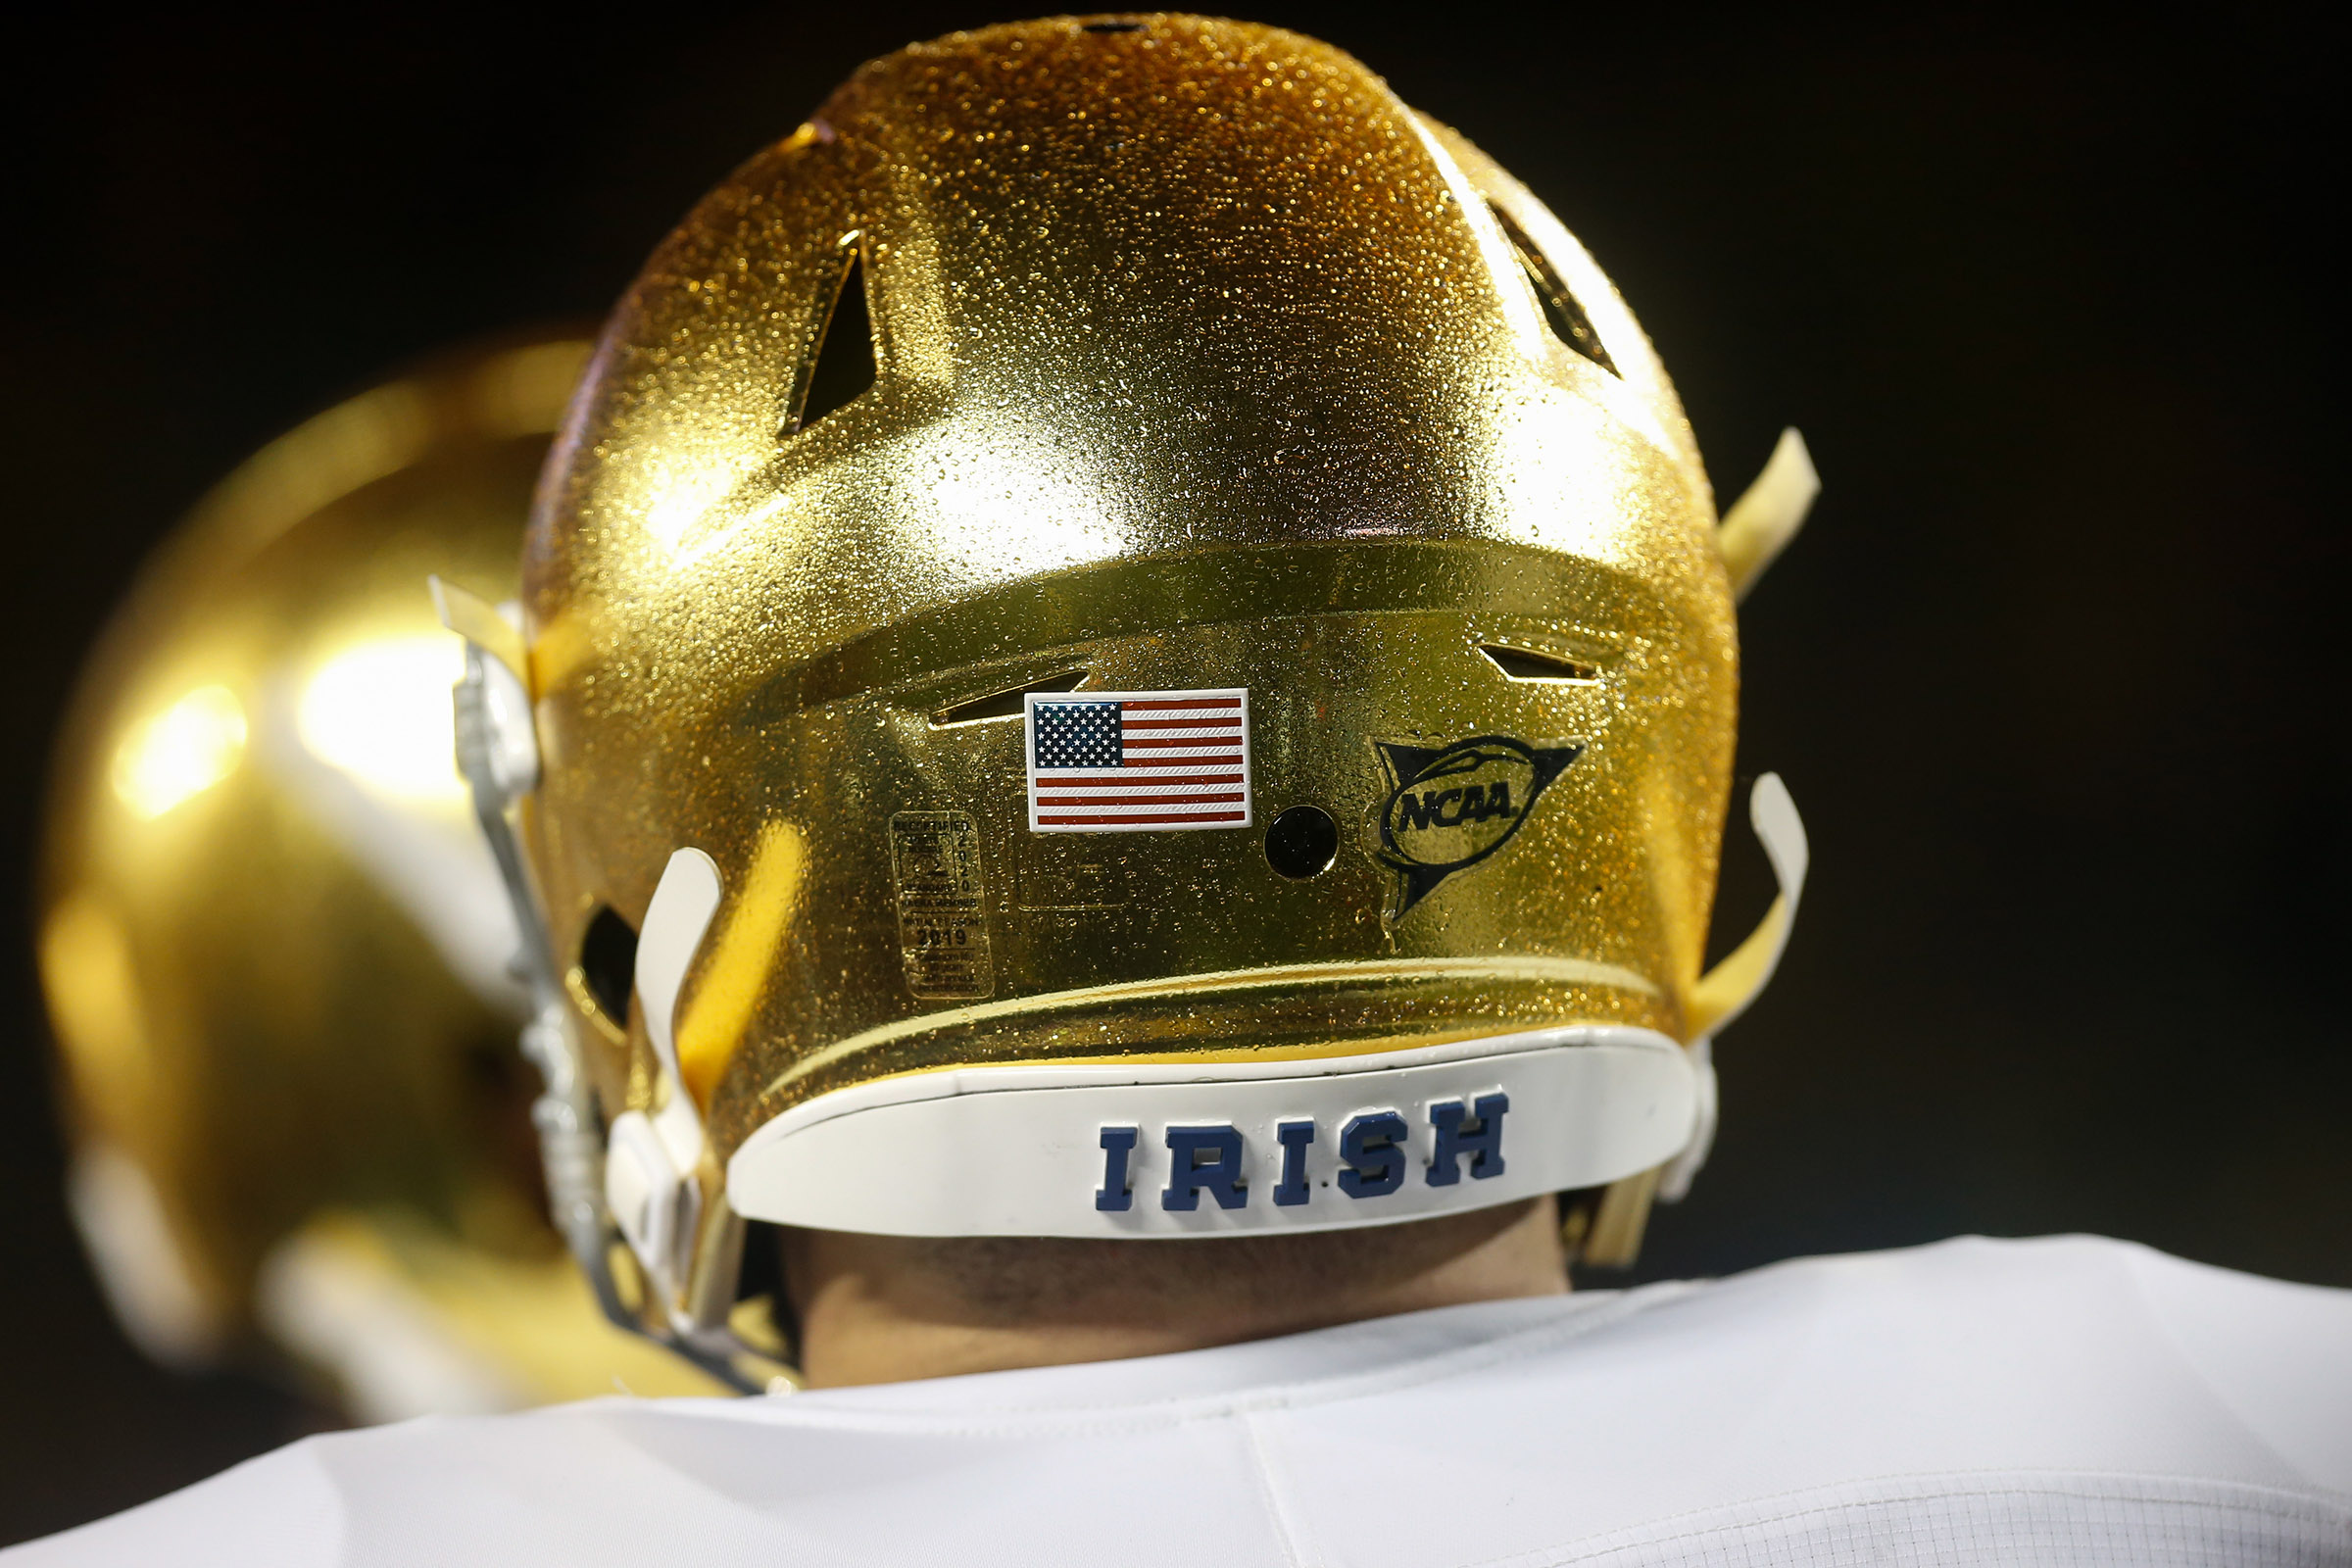 The back of a Notre Dame player's helmet is seen during a game against the Michigan Wolverines on October 26, 2019 at Michigan Stadium in Ann Arbor, Michigan.